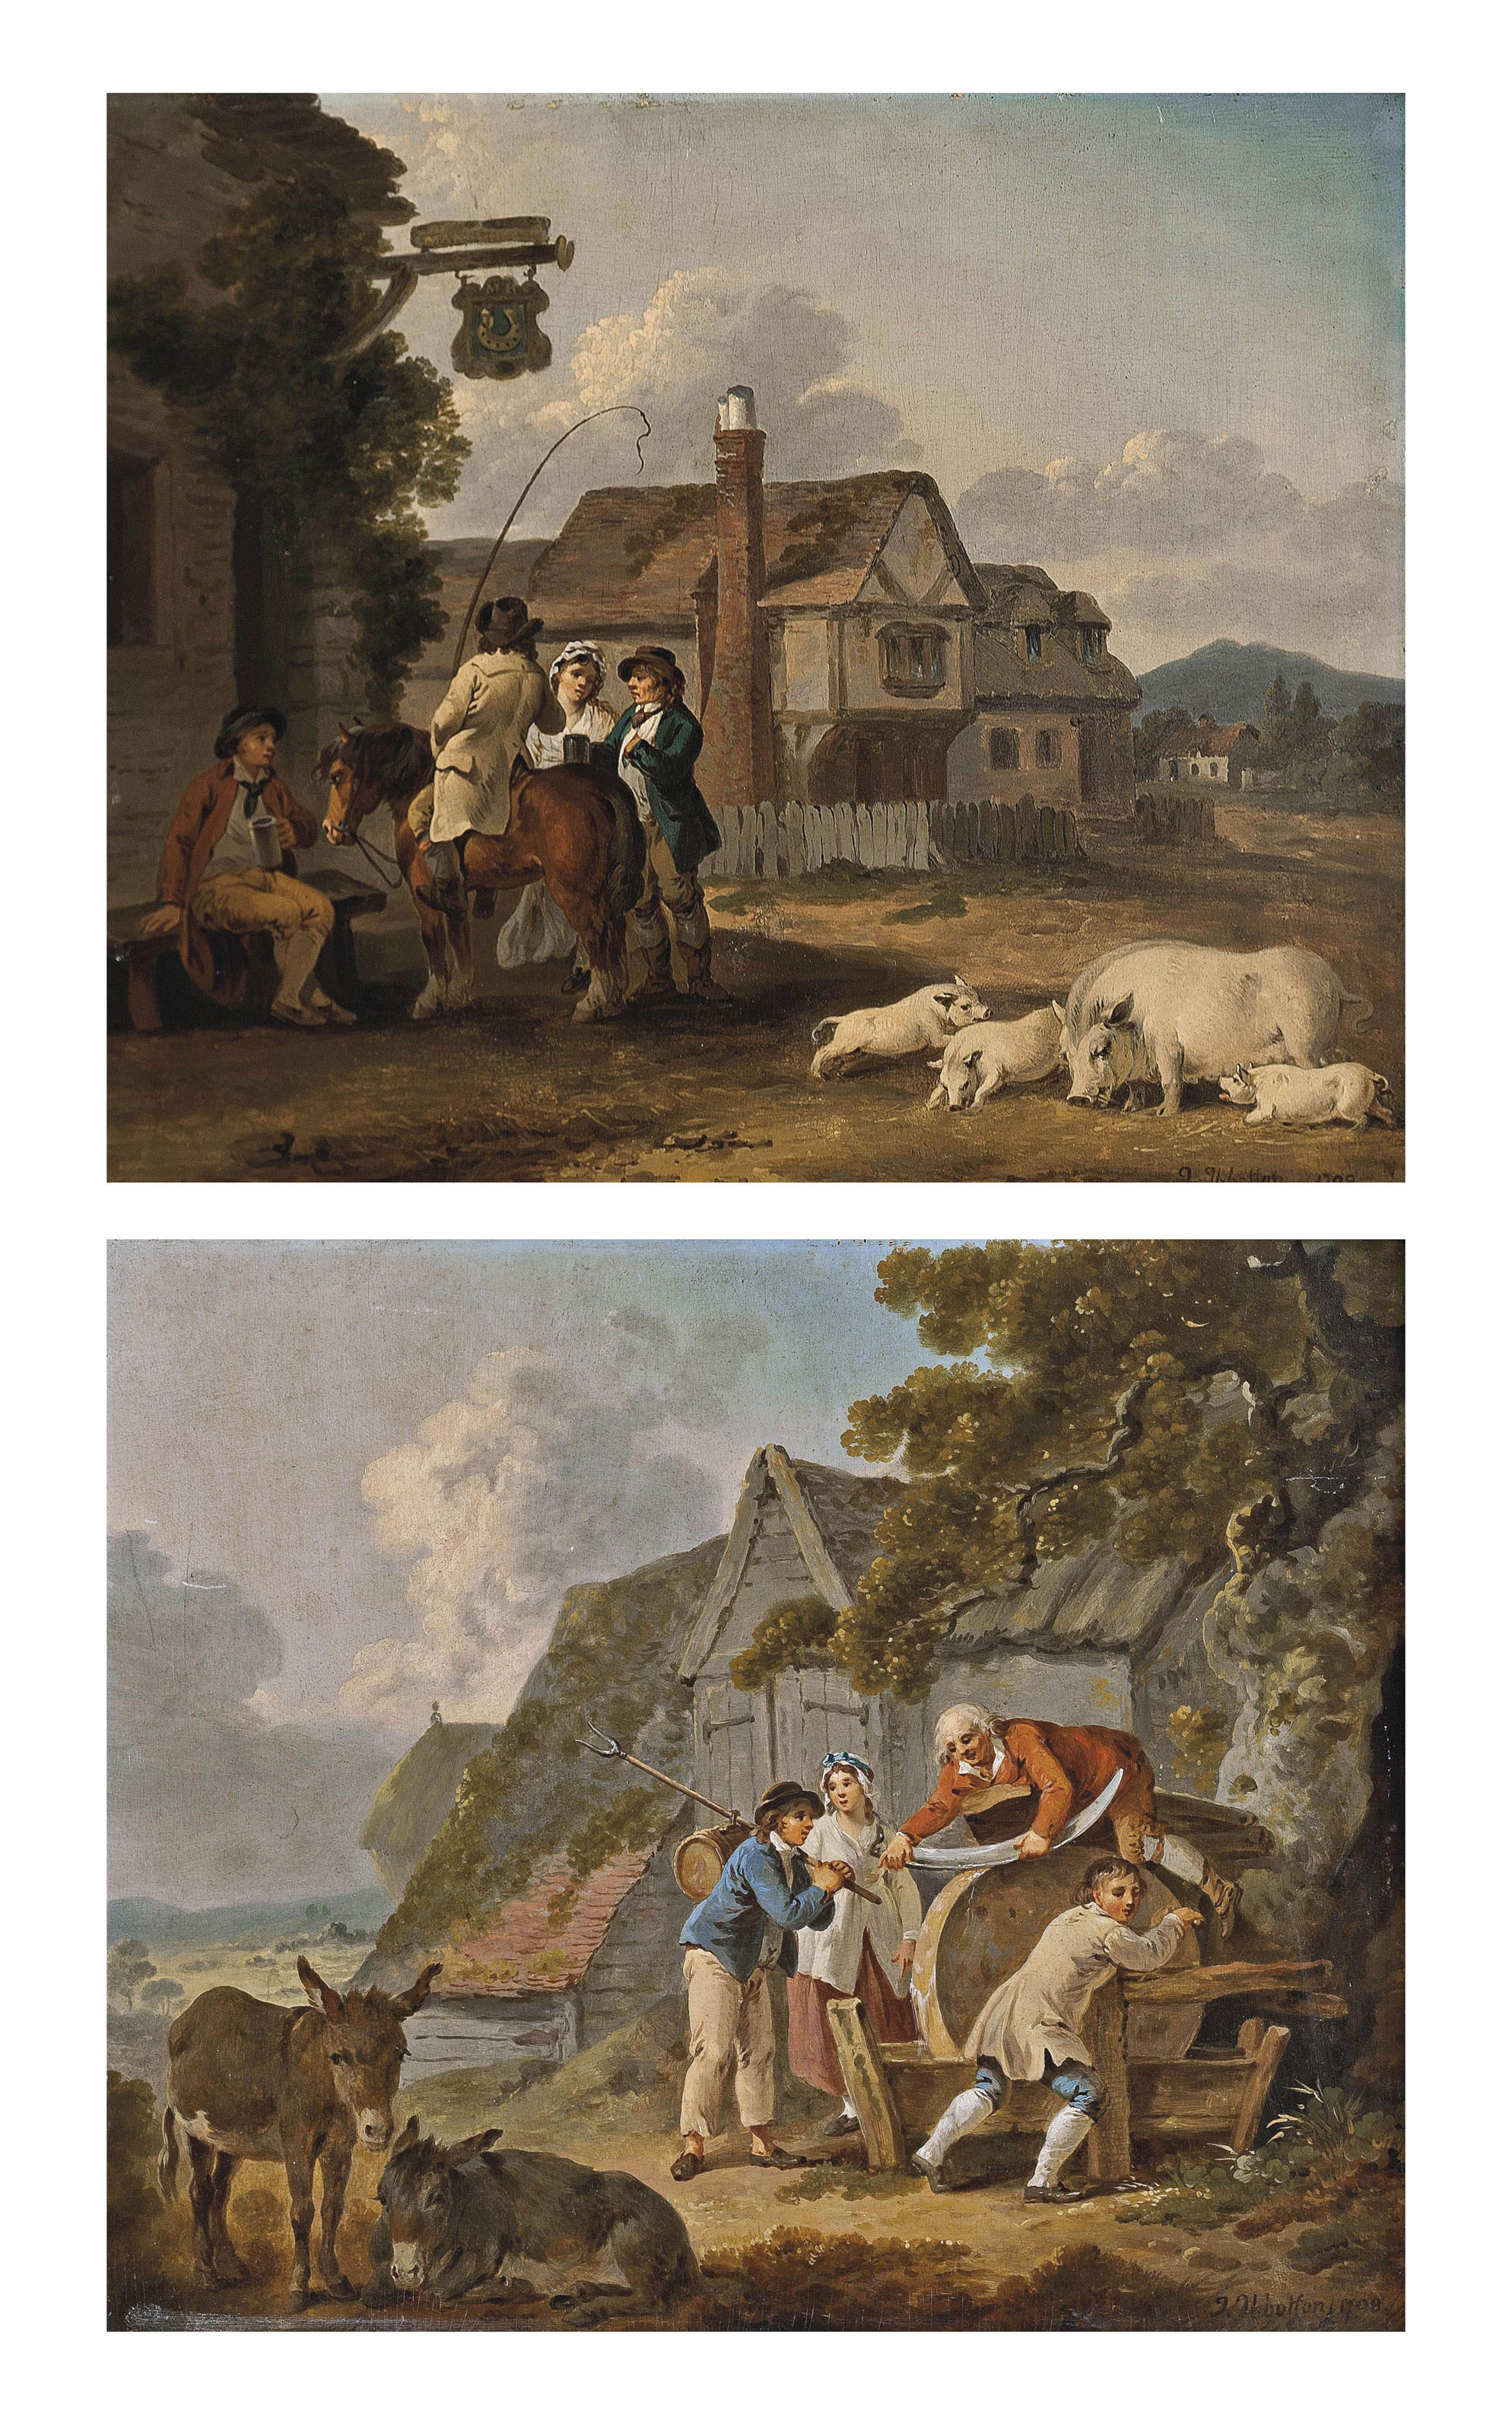 Figures outside an inn, with a sow and piglets, houses beyond; and Figures sharpening a scythe, with two donkeys, farm buildings beyond